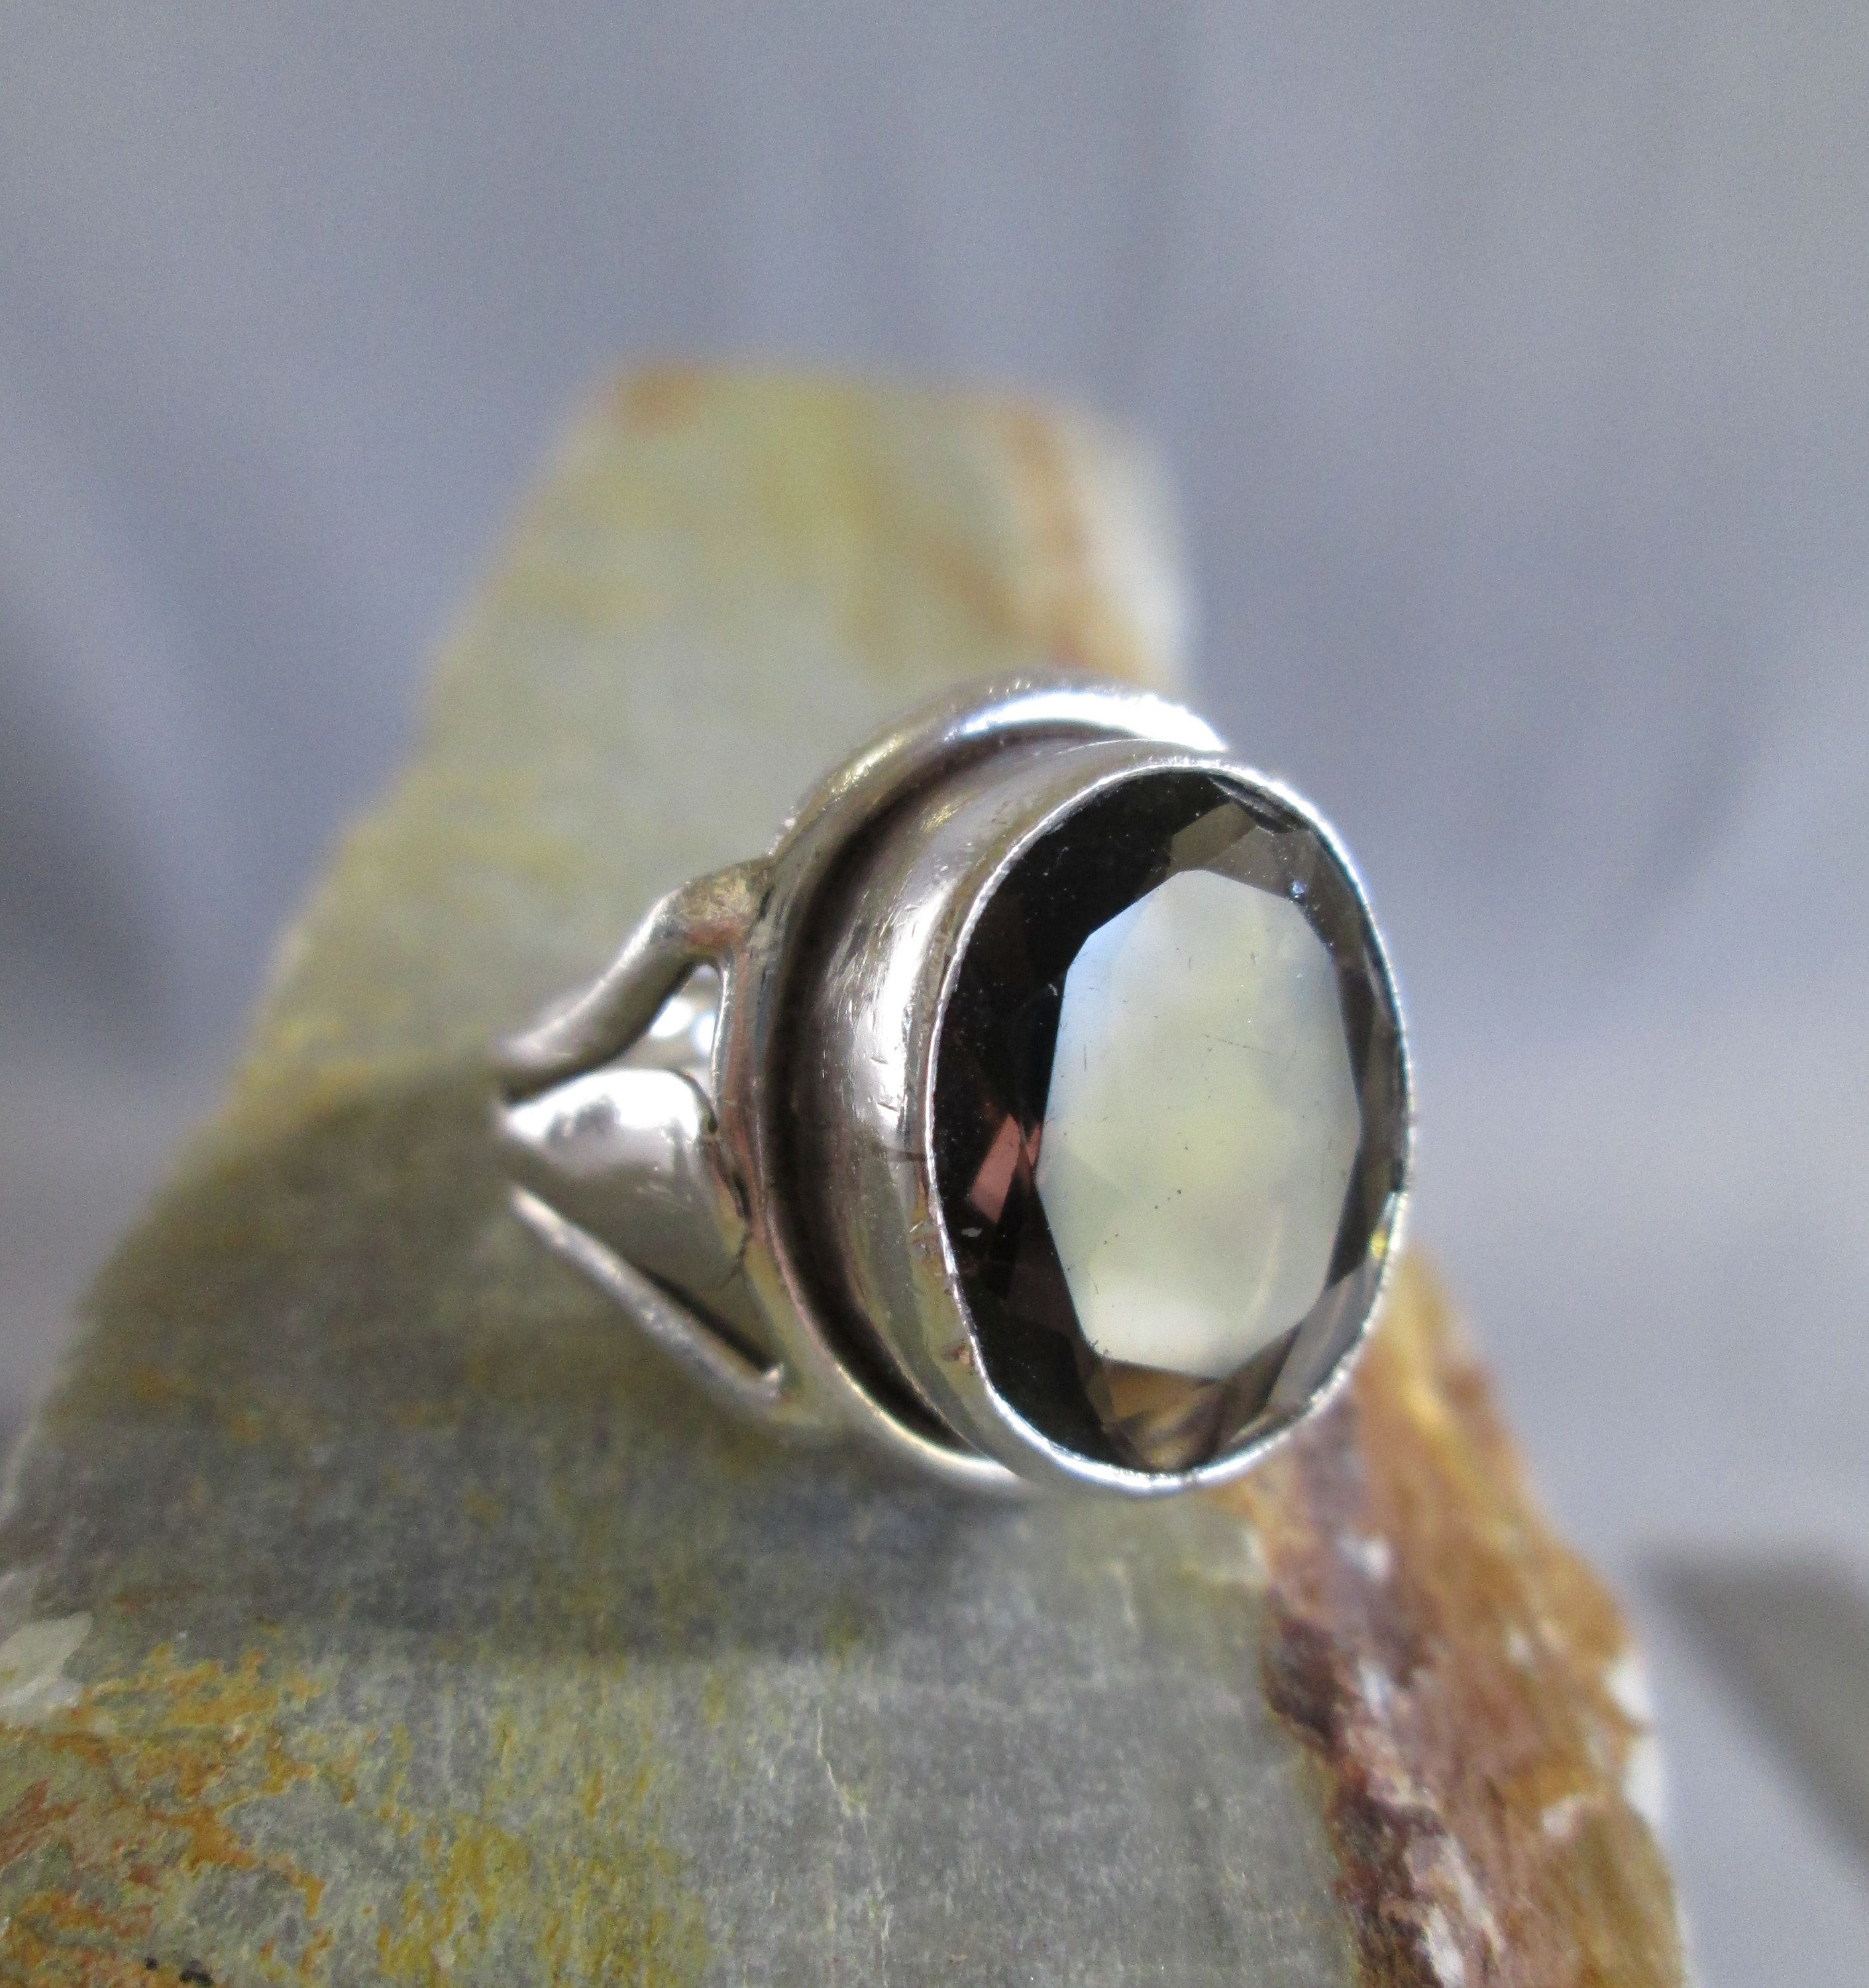 gifts for friends Heavy Cool Rings three stone ring Women Rings Sterling Silver silver thumb ring signet ring stone Large Chunky Rings